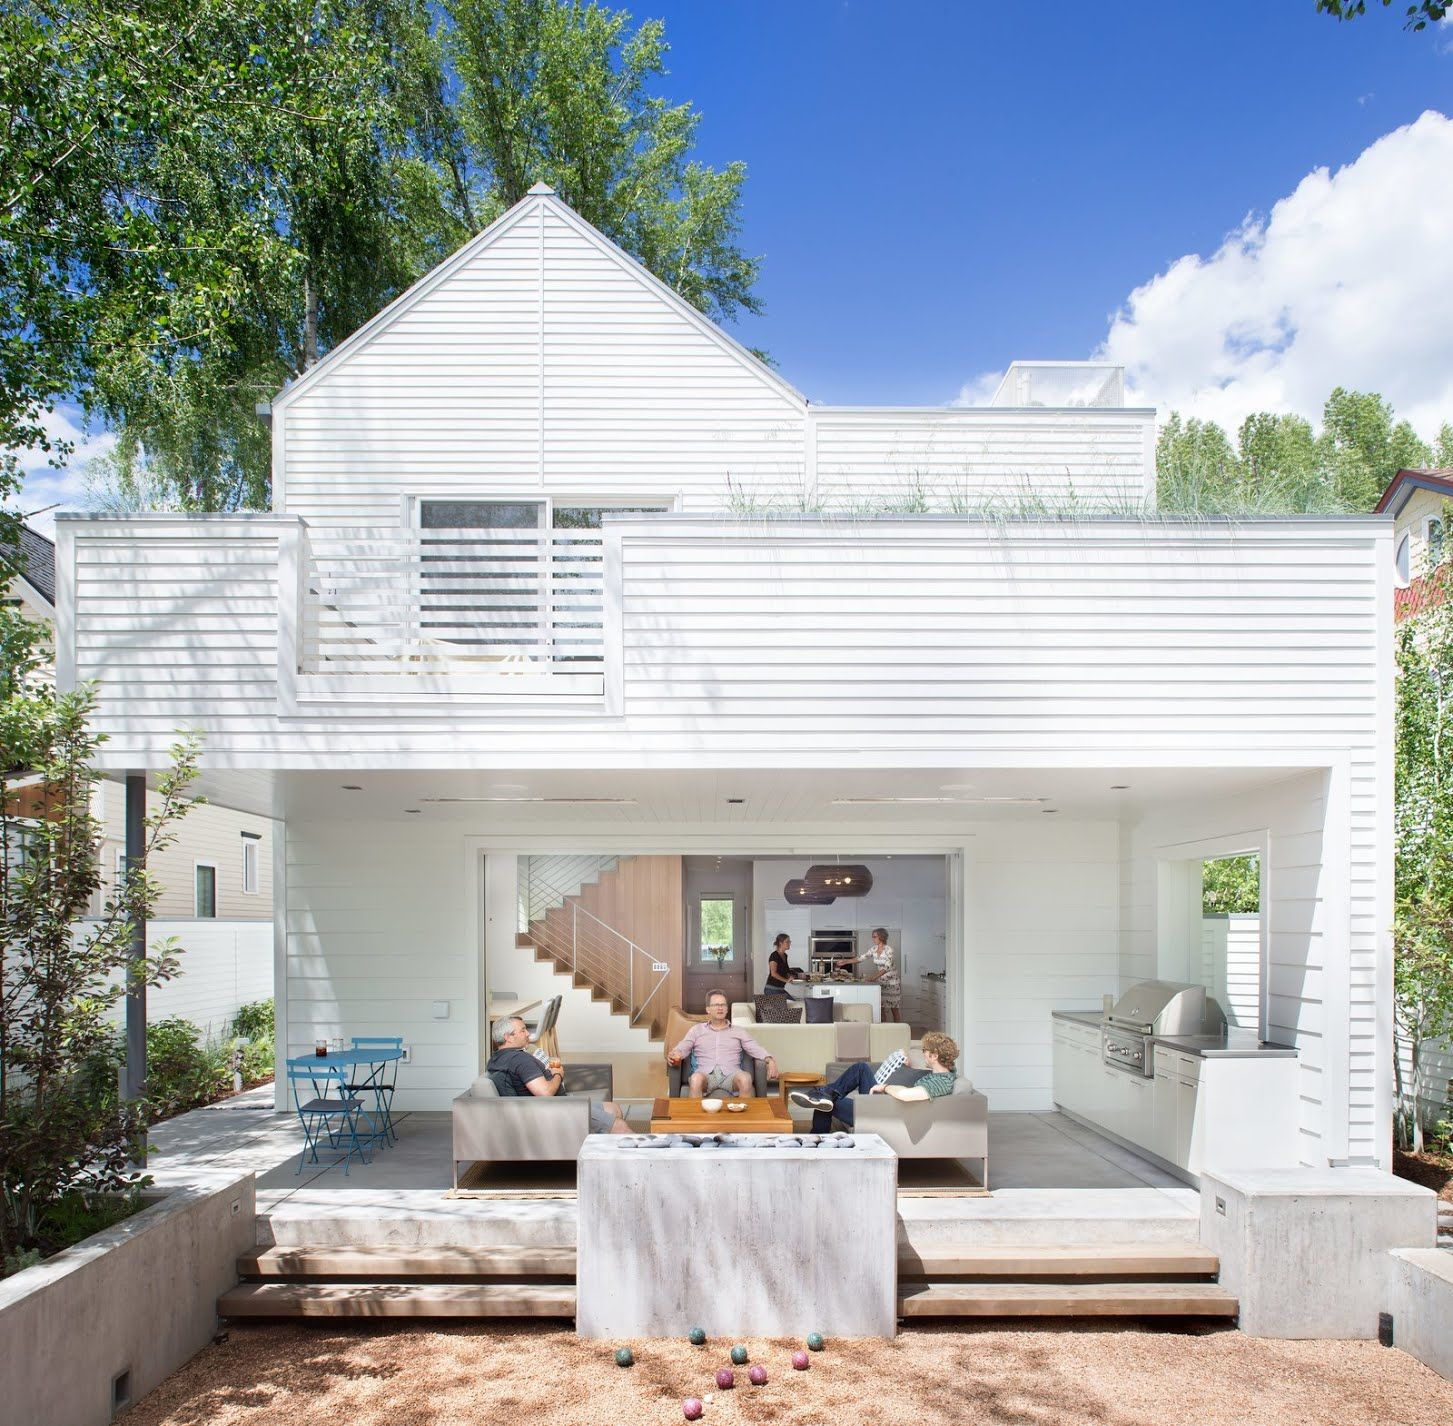 Dwell - 5 Terms in Sustainable Design You Should Know | inside ...